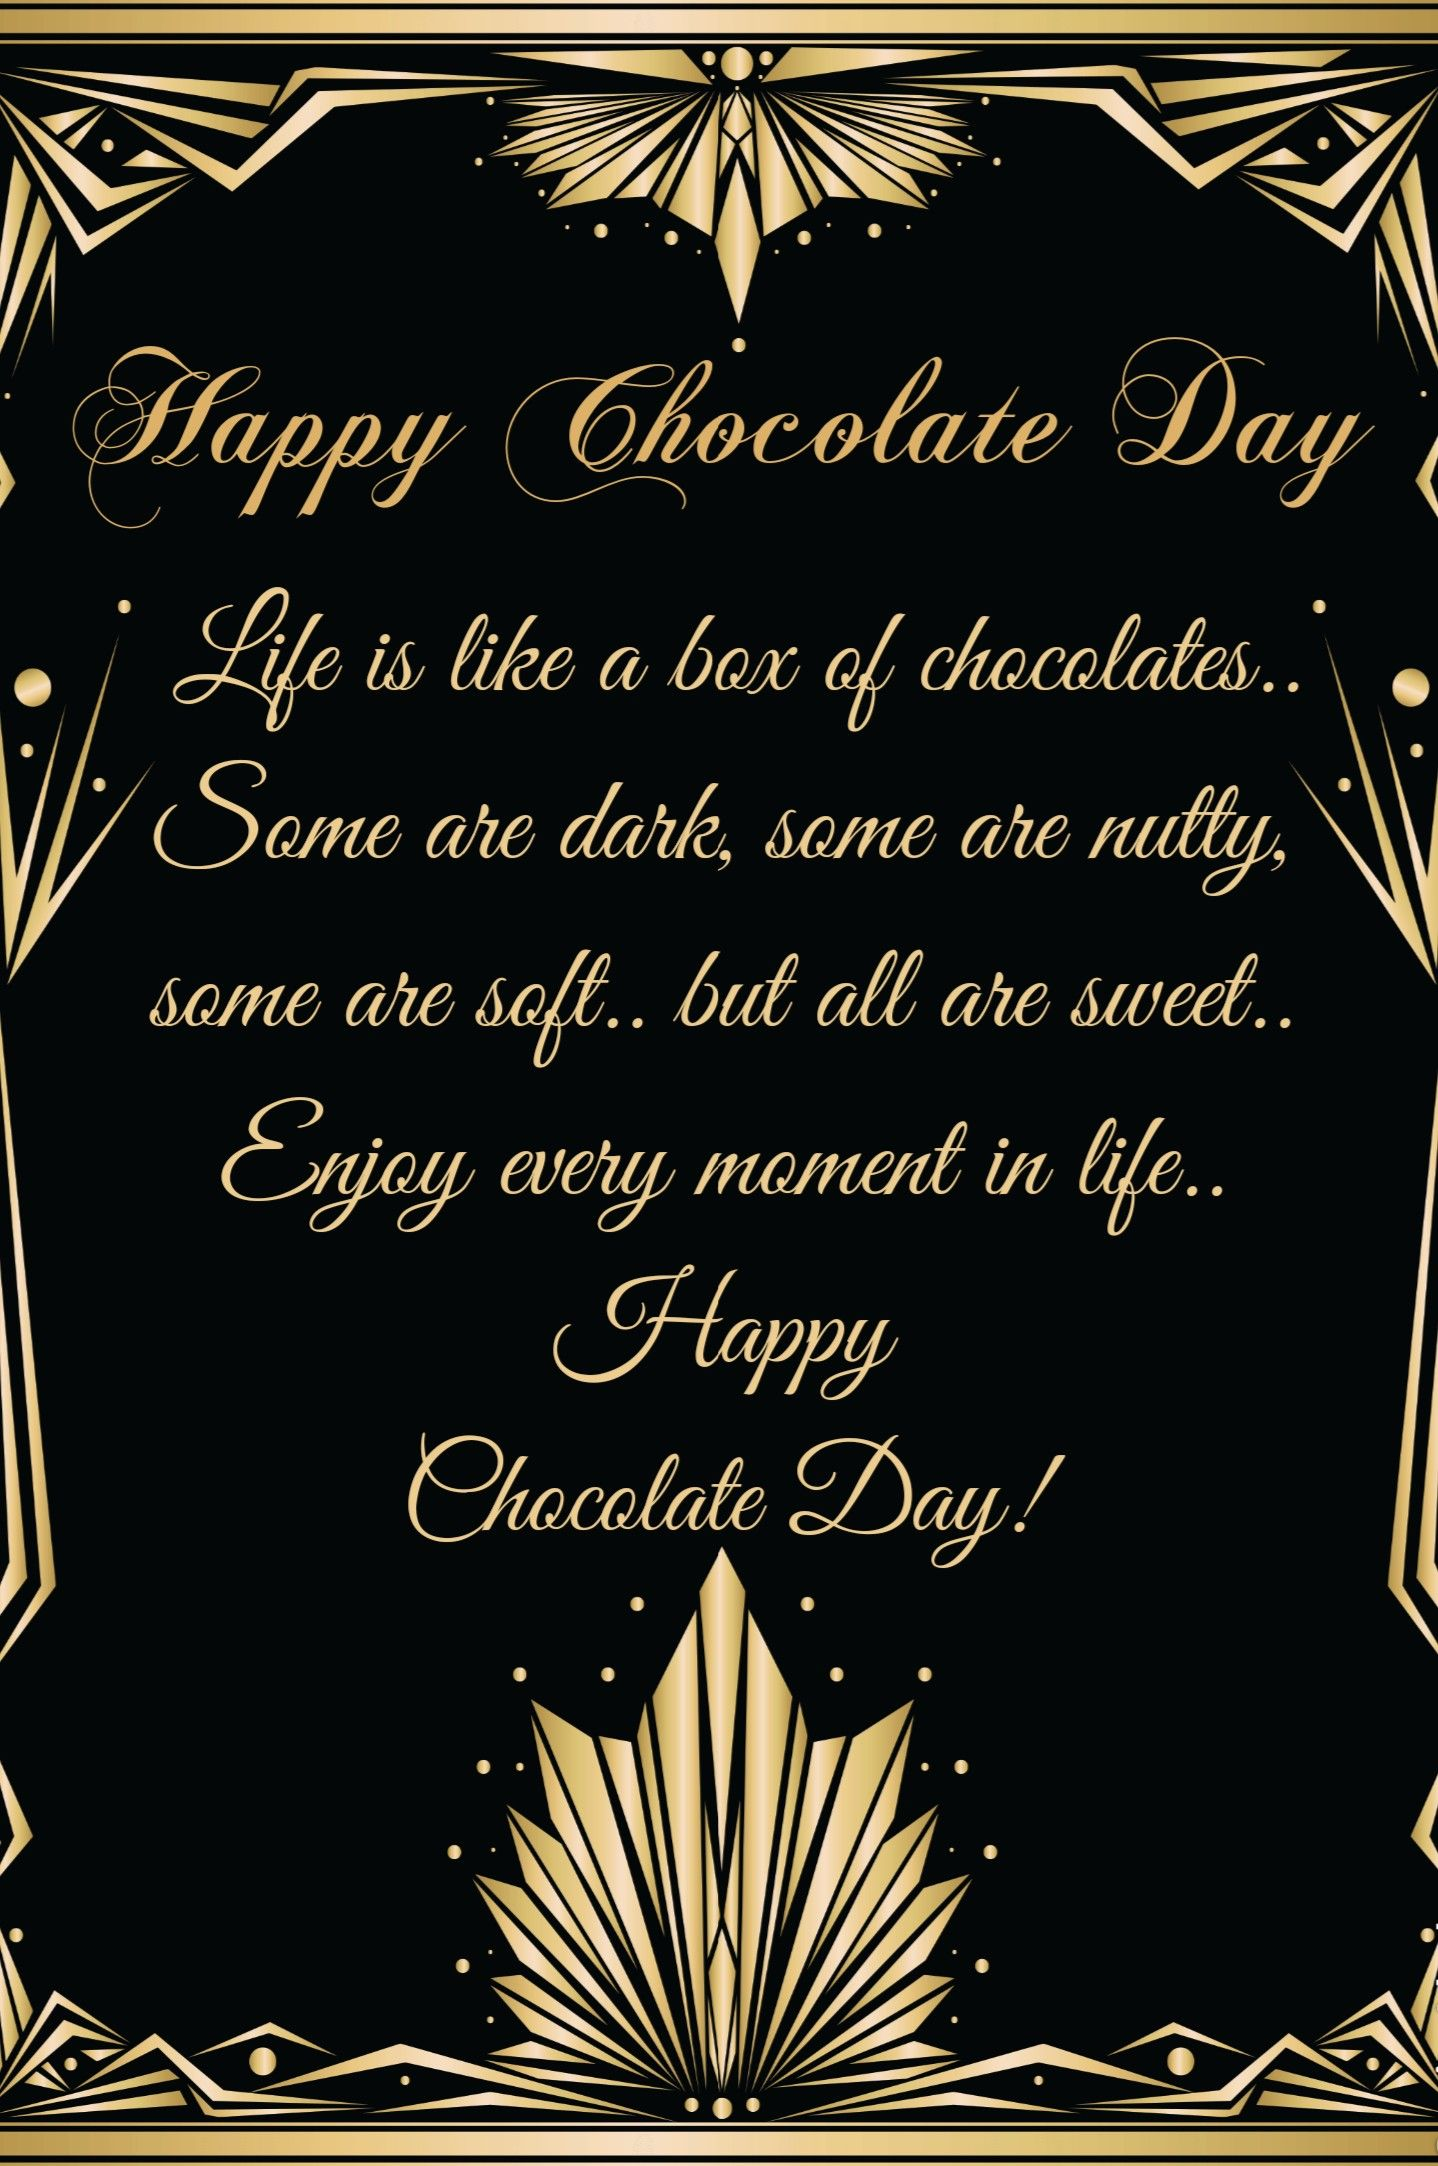 Chocolate Day Massages And Wishes